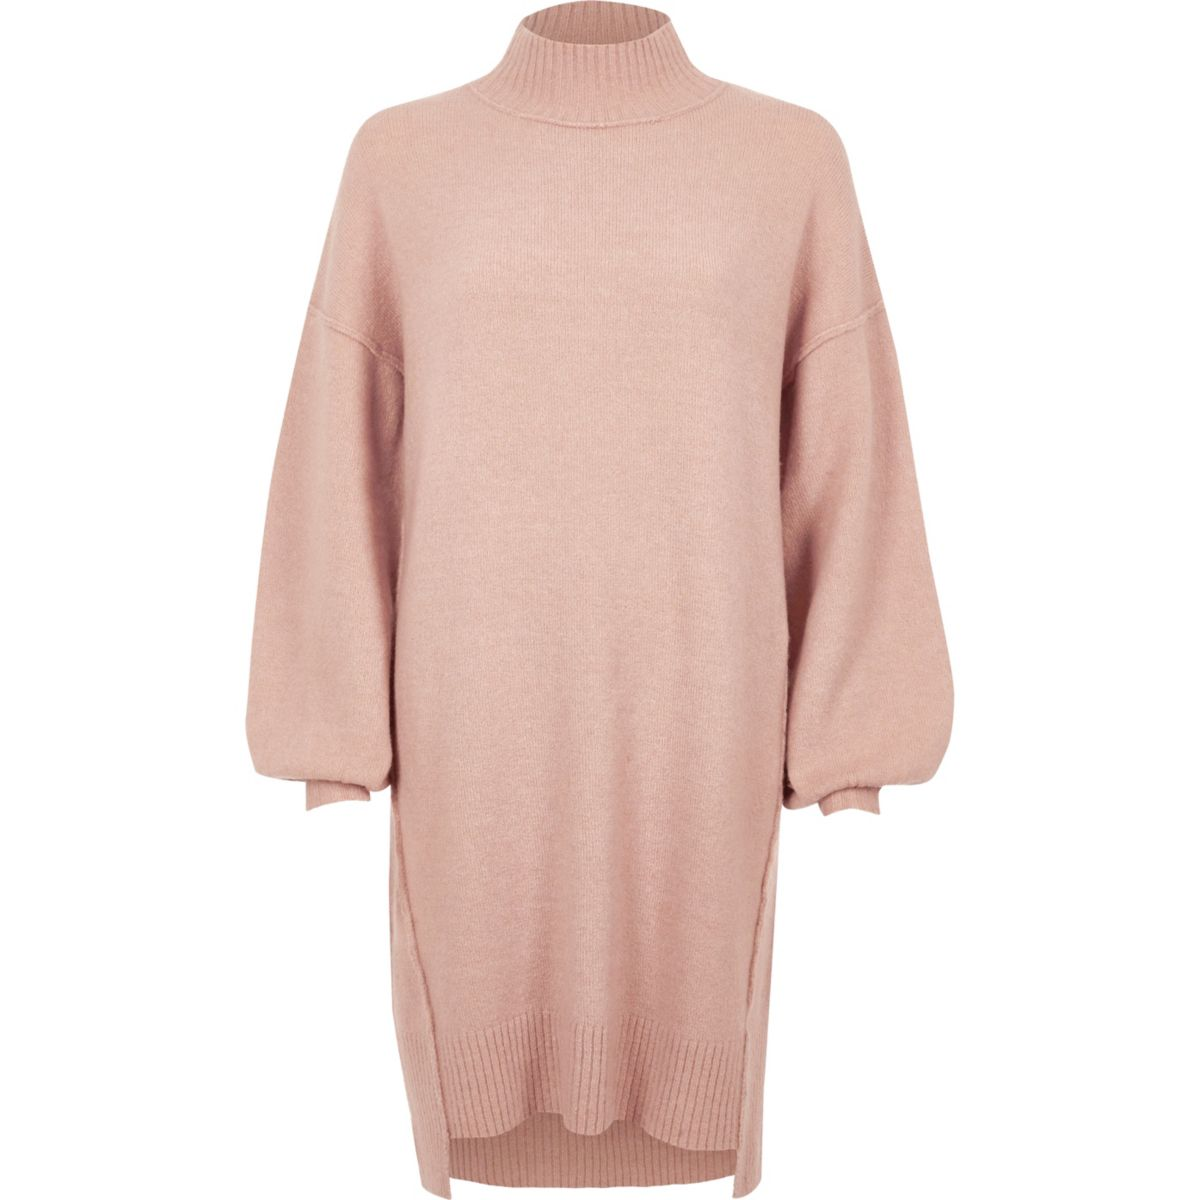 Light pink knit balloon sleeve sweater dress - Dresses - Sale - women